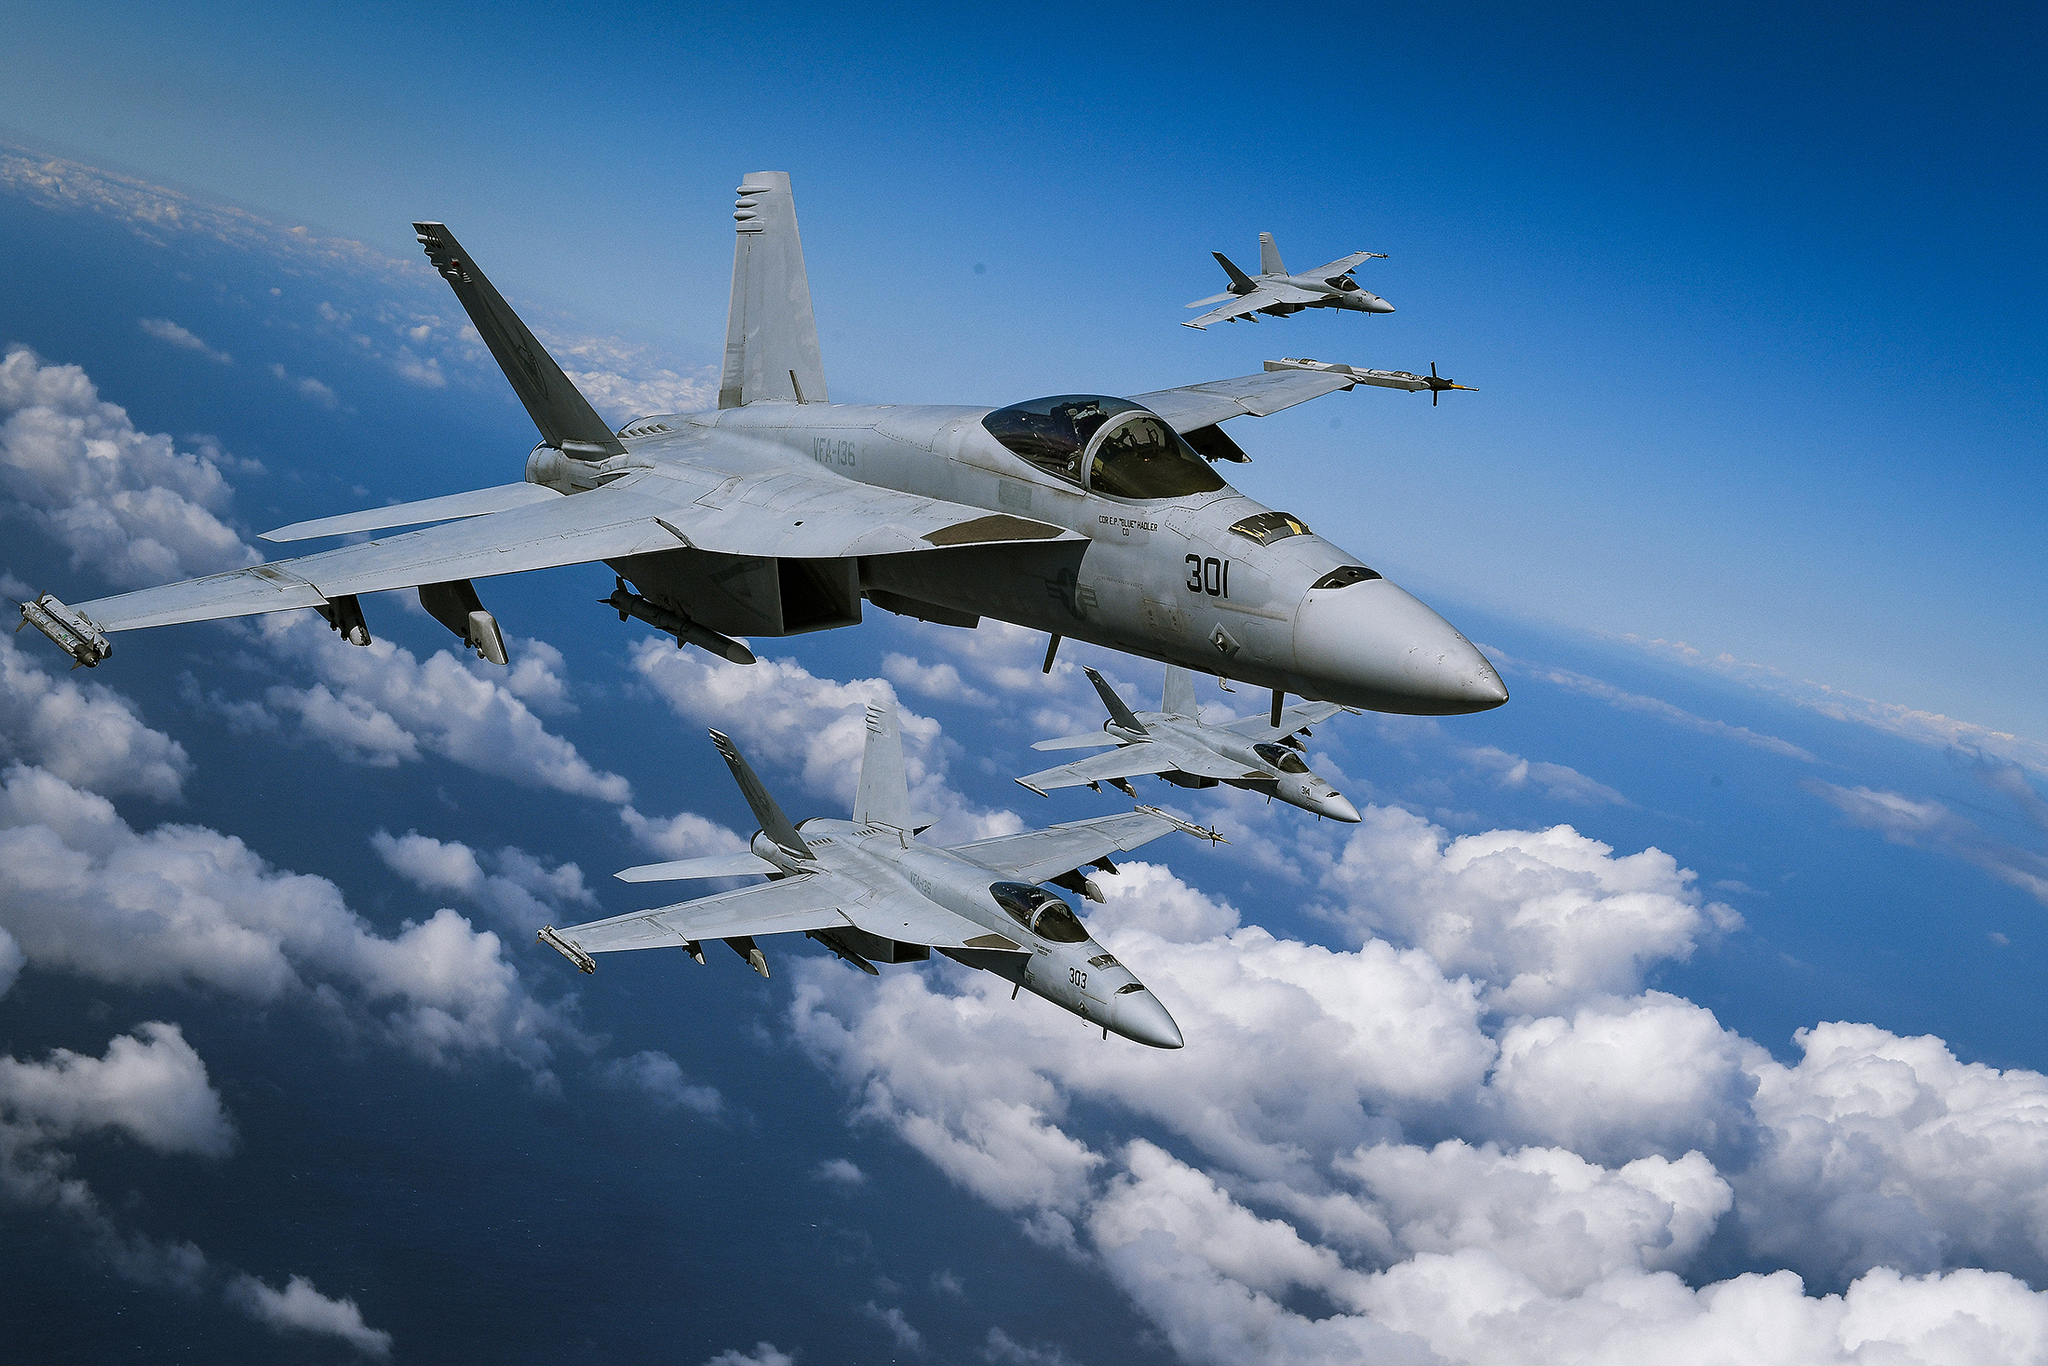 F/A-18E Super Hornets based at Naval Air Station Lemoore fly in formation during a photo exercise over California on March 12, 2019. (Chief Mass Communication Specialist Shannon Renfroe/Navy)